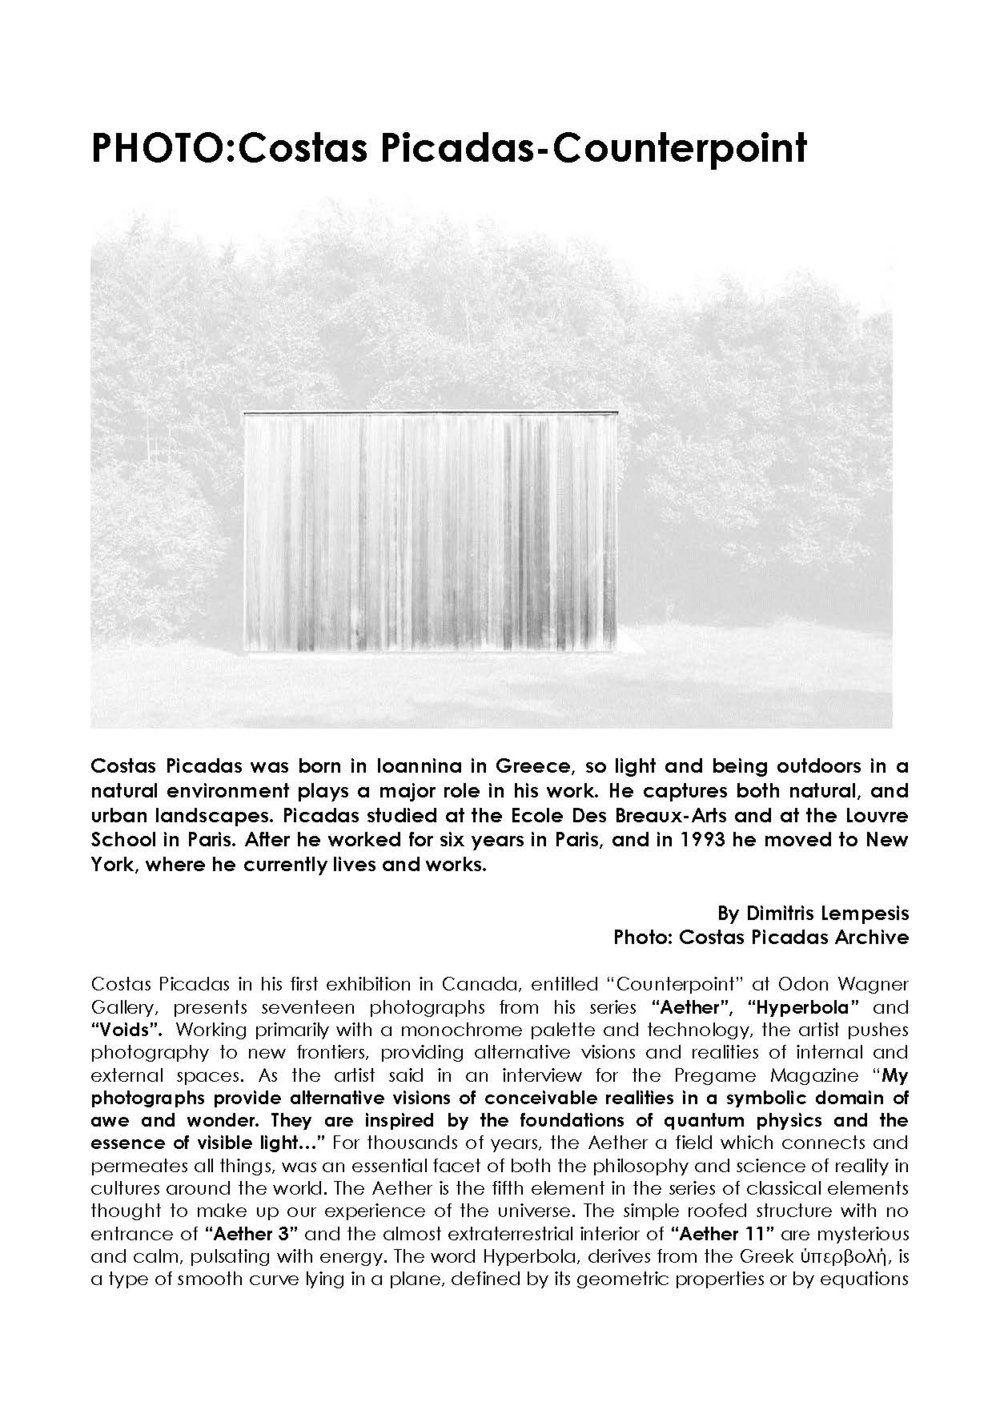 Costas Picadas-Counterpoint_Page_1.jpg